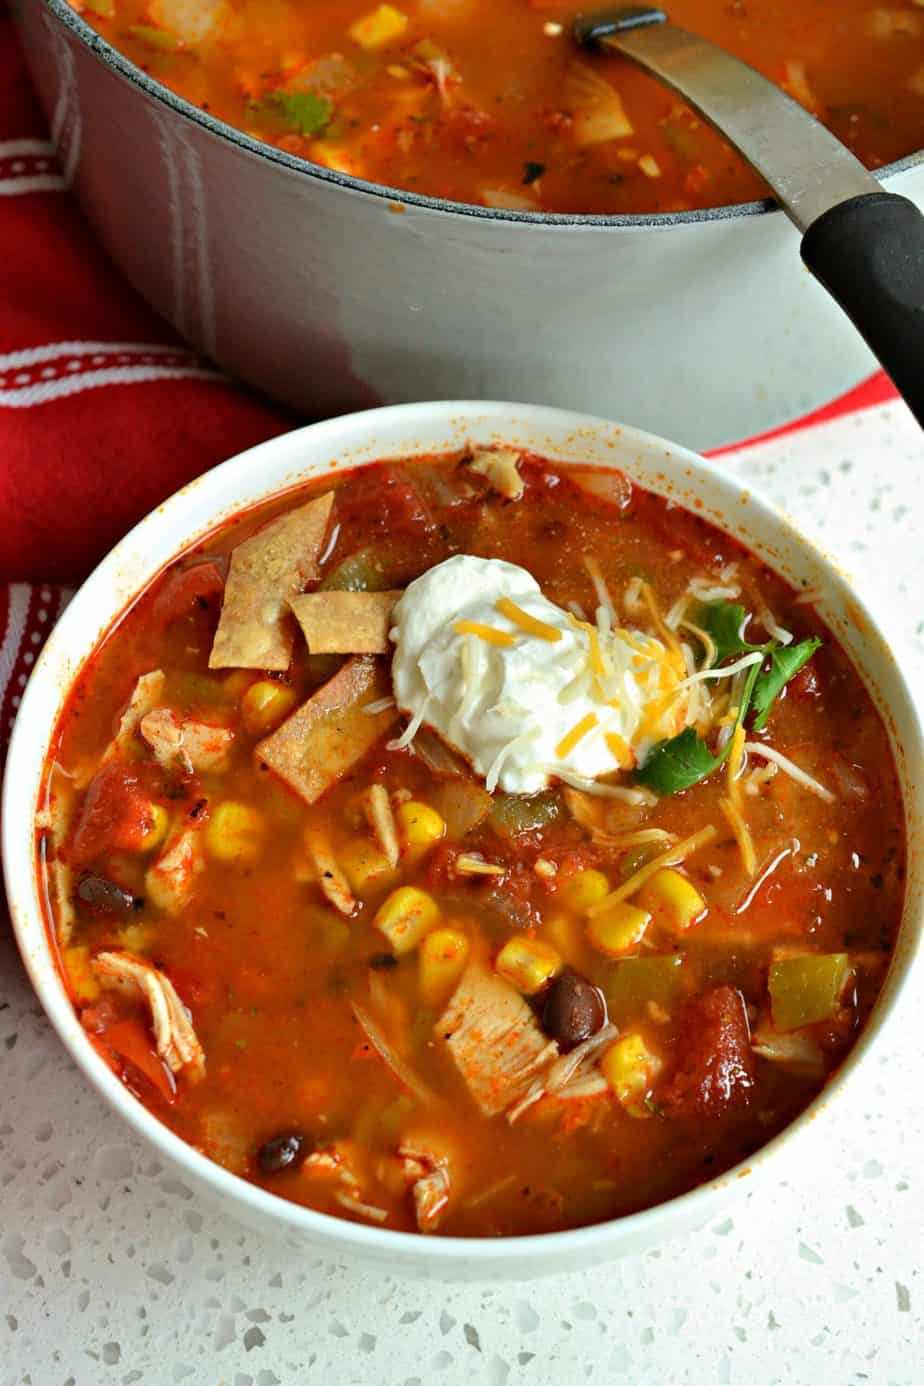 This delicious yet simple Chicken Taco Soup is made in less than thirty minutes using already cooked rotisserie chicken.